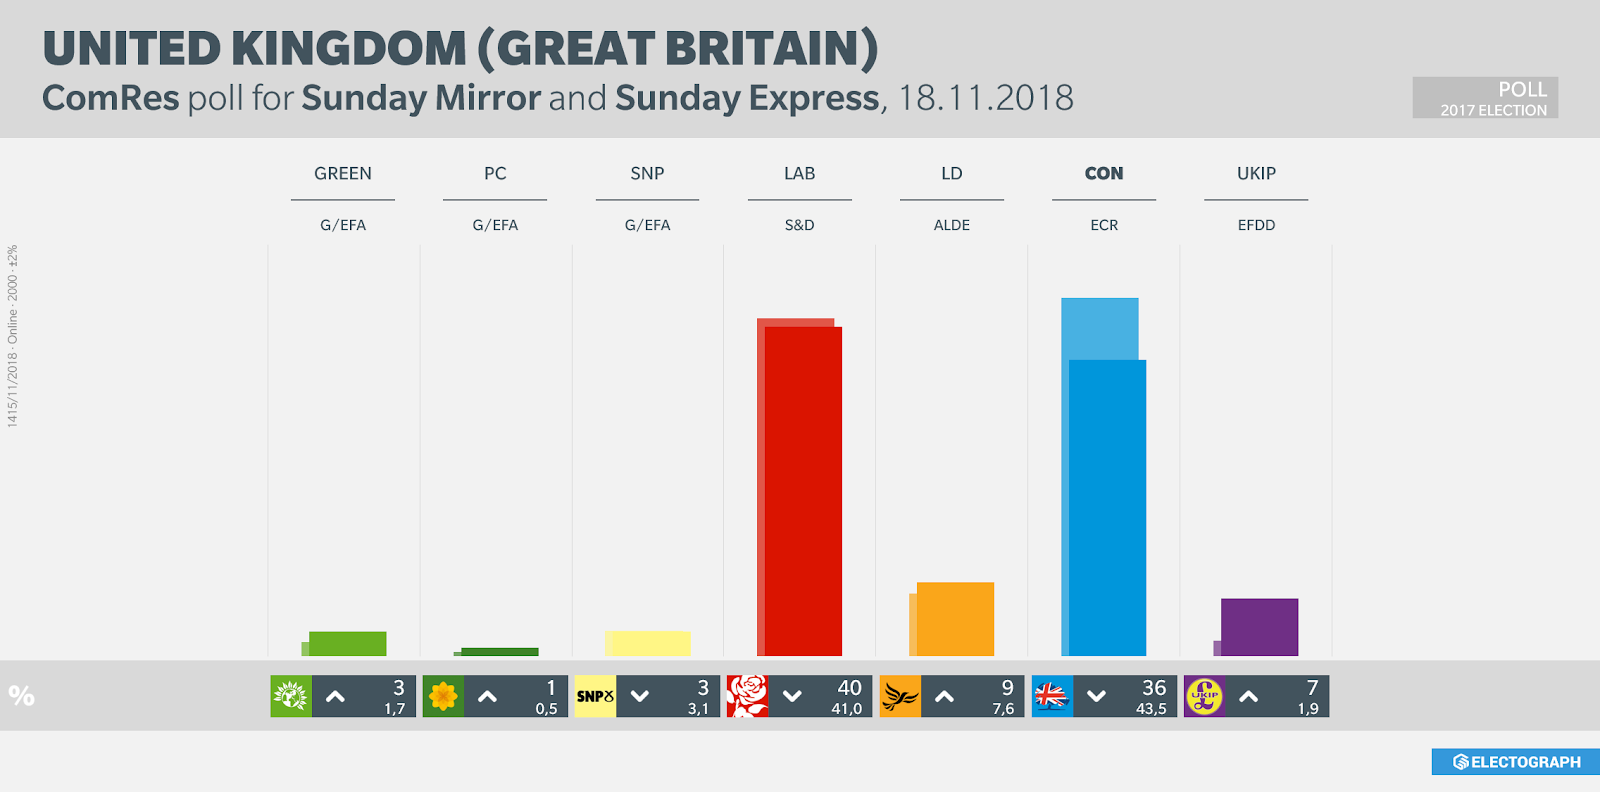 UNITED KINGDOM: ComRes poll chart for Sunday Mirror and Sunday Express, 18 November 2018